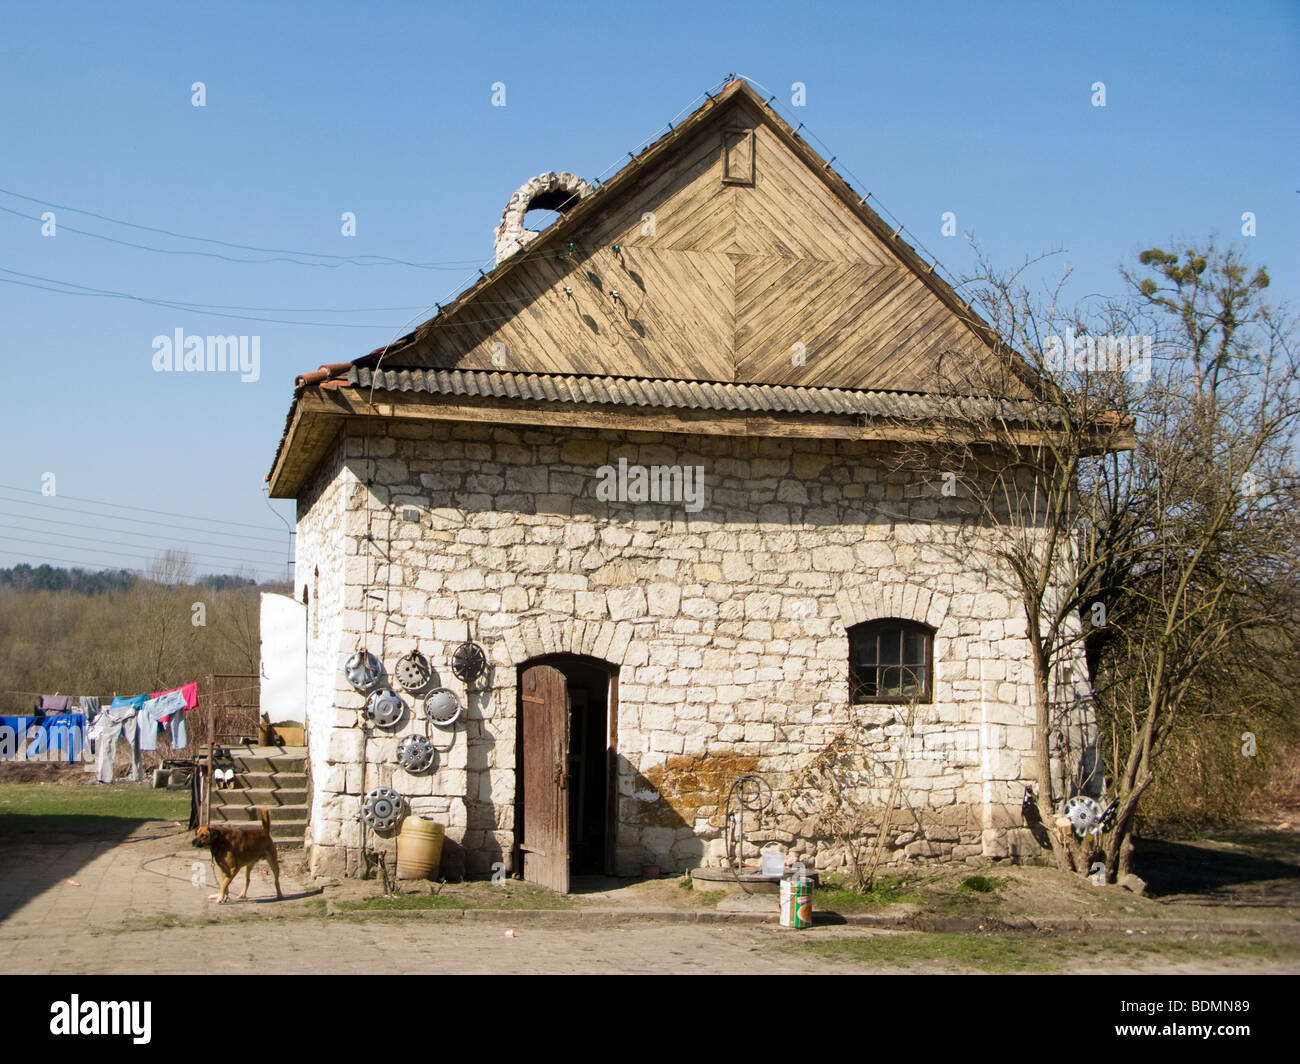 Small farmhouse of brick and wood in a village in eastern Poland - Stock Image